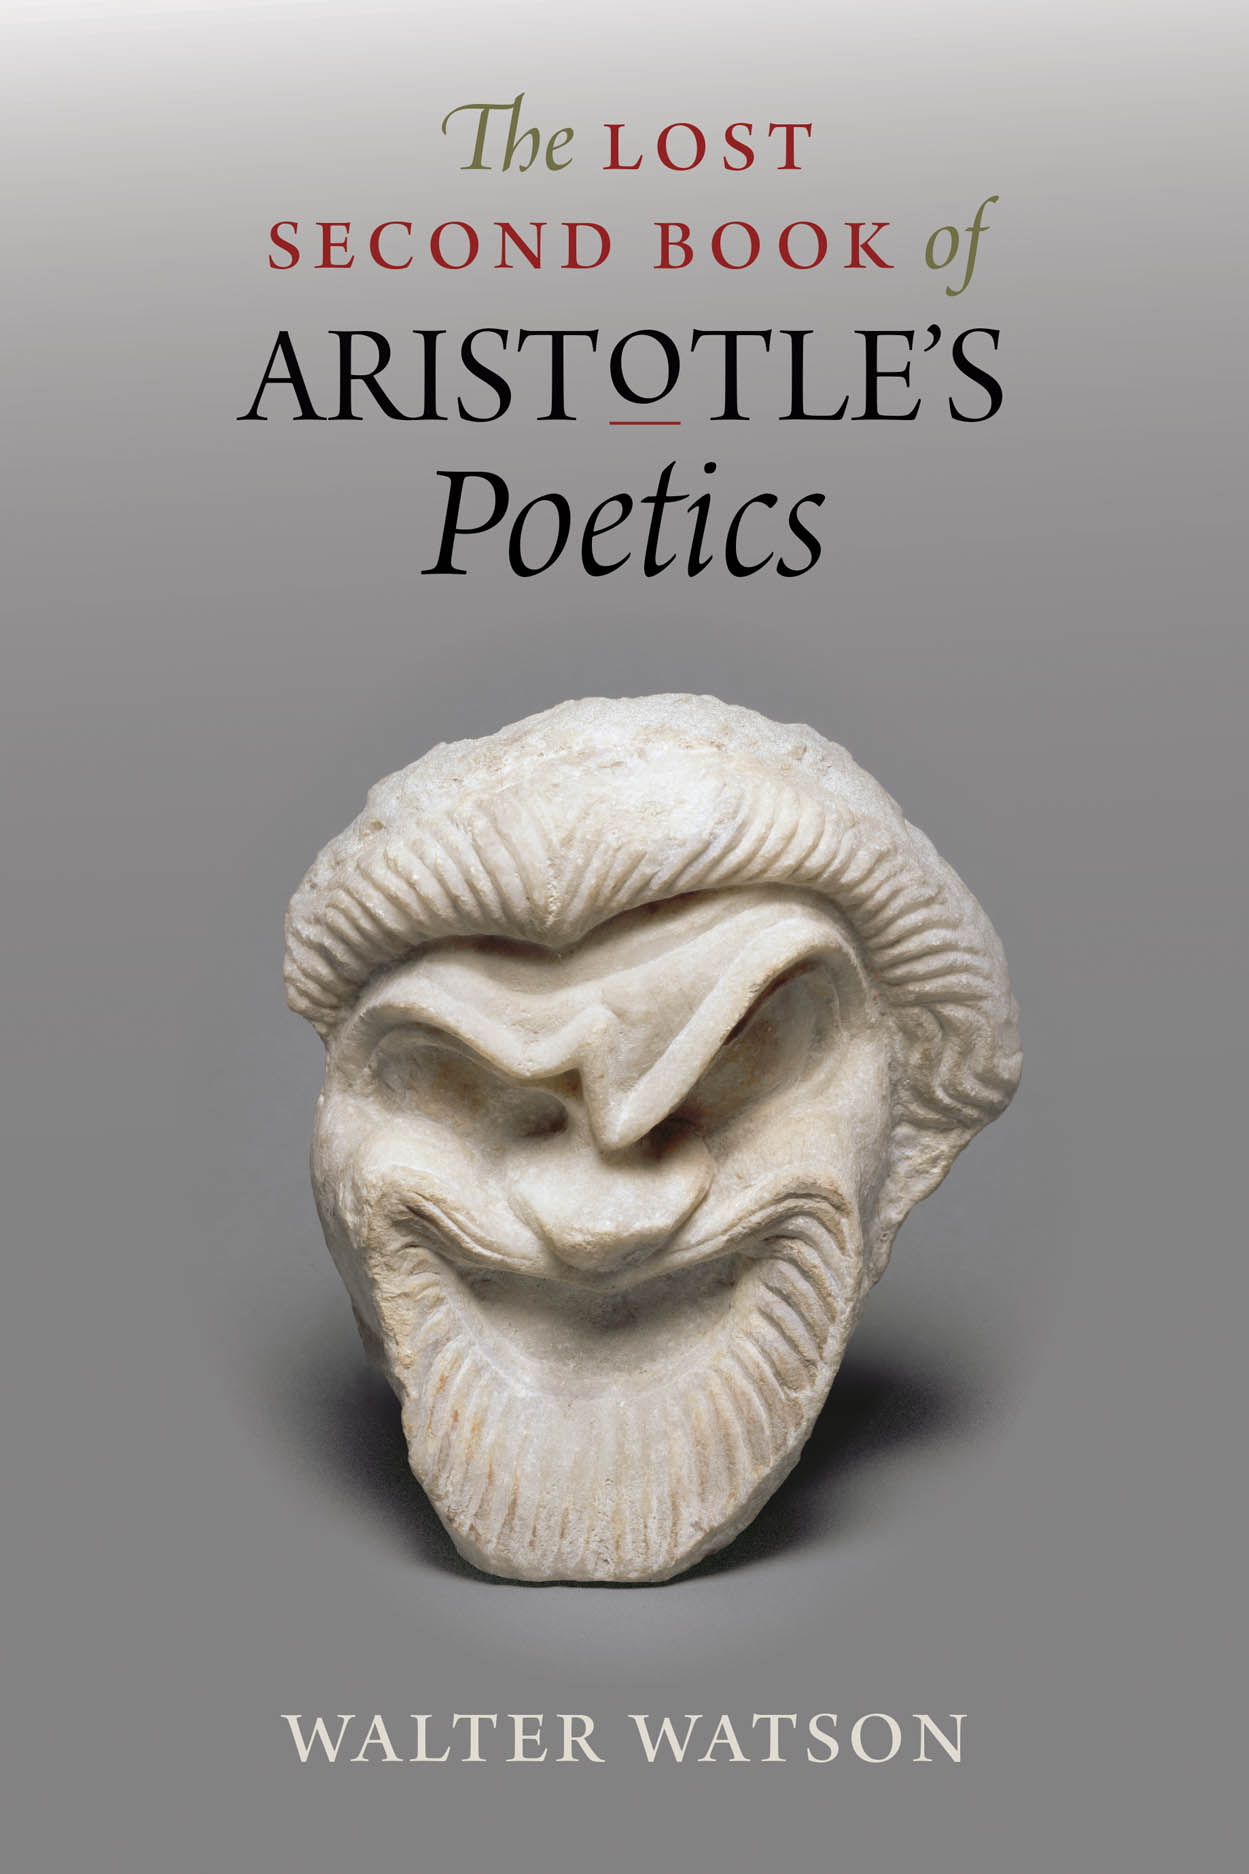 The Lost Second Book of Aristotle's